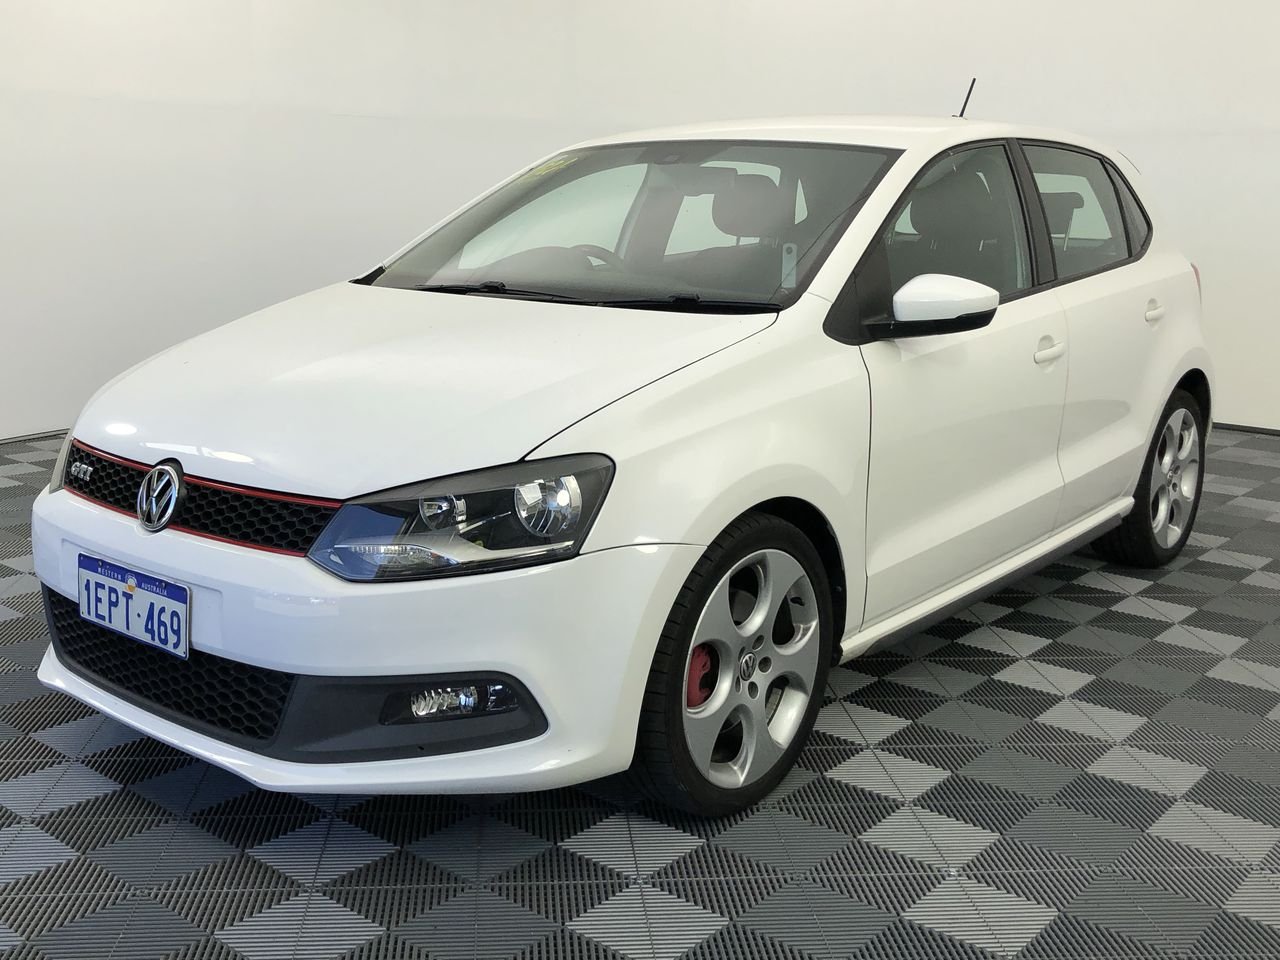 2012 Volkswagen Polo GTI 6R Automatic Hatchback